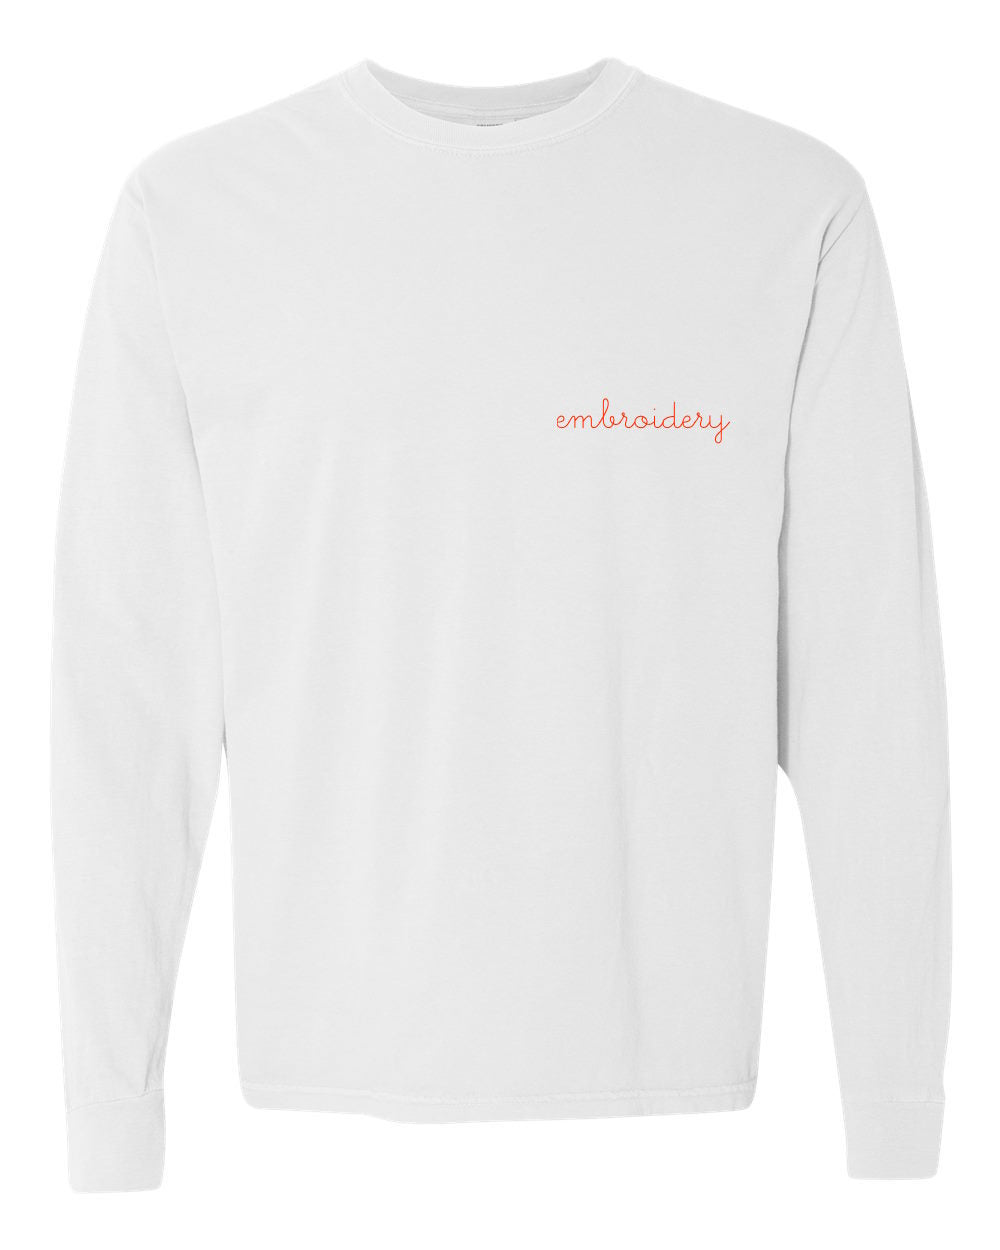 Adult Vintagewash Longsleeve Shirt (Unisex) juju + stitch Adult S / White custom personalized script embroidered longsleeve shirt